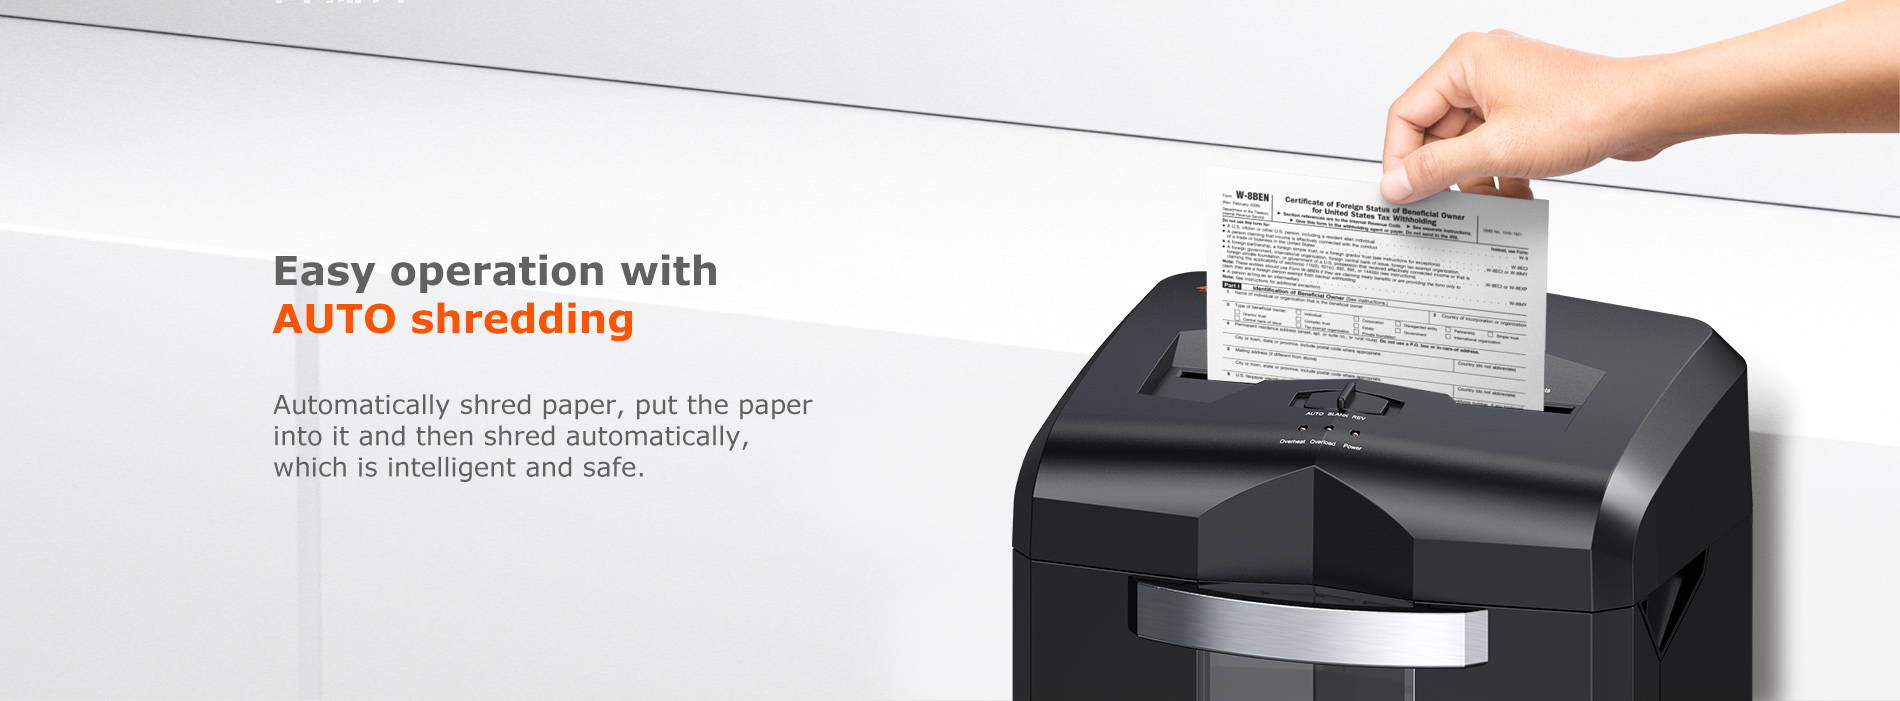 Easy operation with AUTO shredding Automatically shred paper, put the paper into it and then shred wutomatically, which is intelligent and safe.